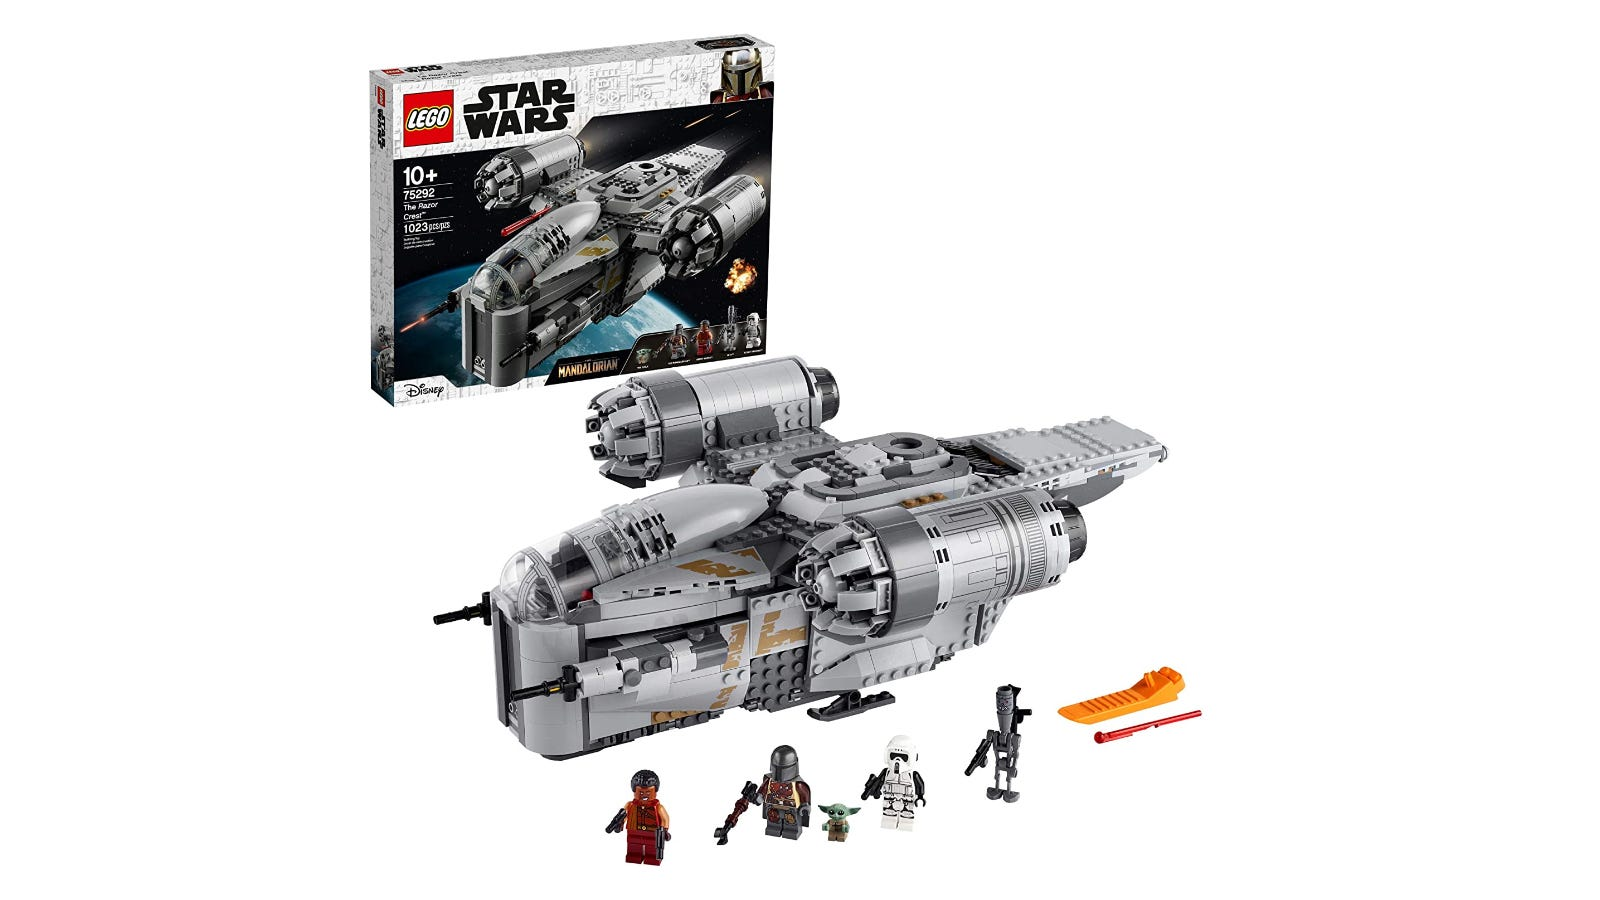 LEGO Star Wars: The Mandalorian The Razor Crest